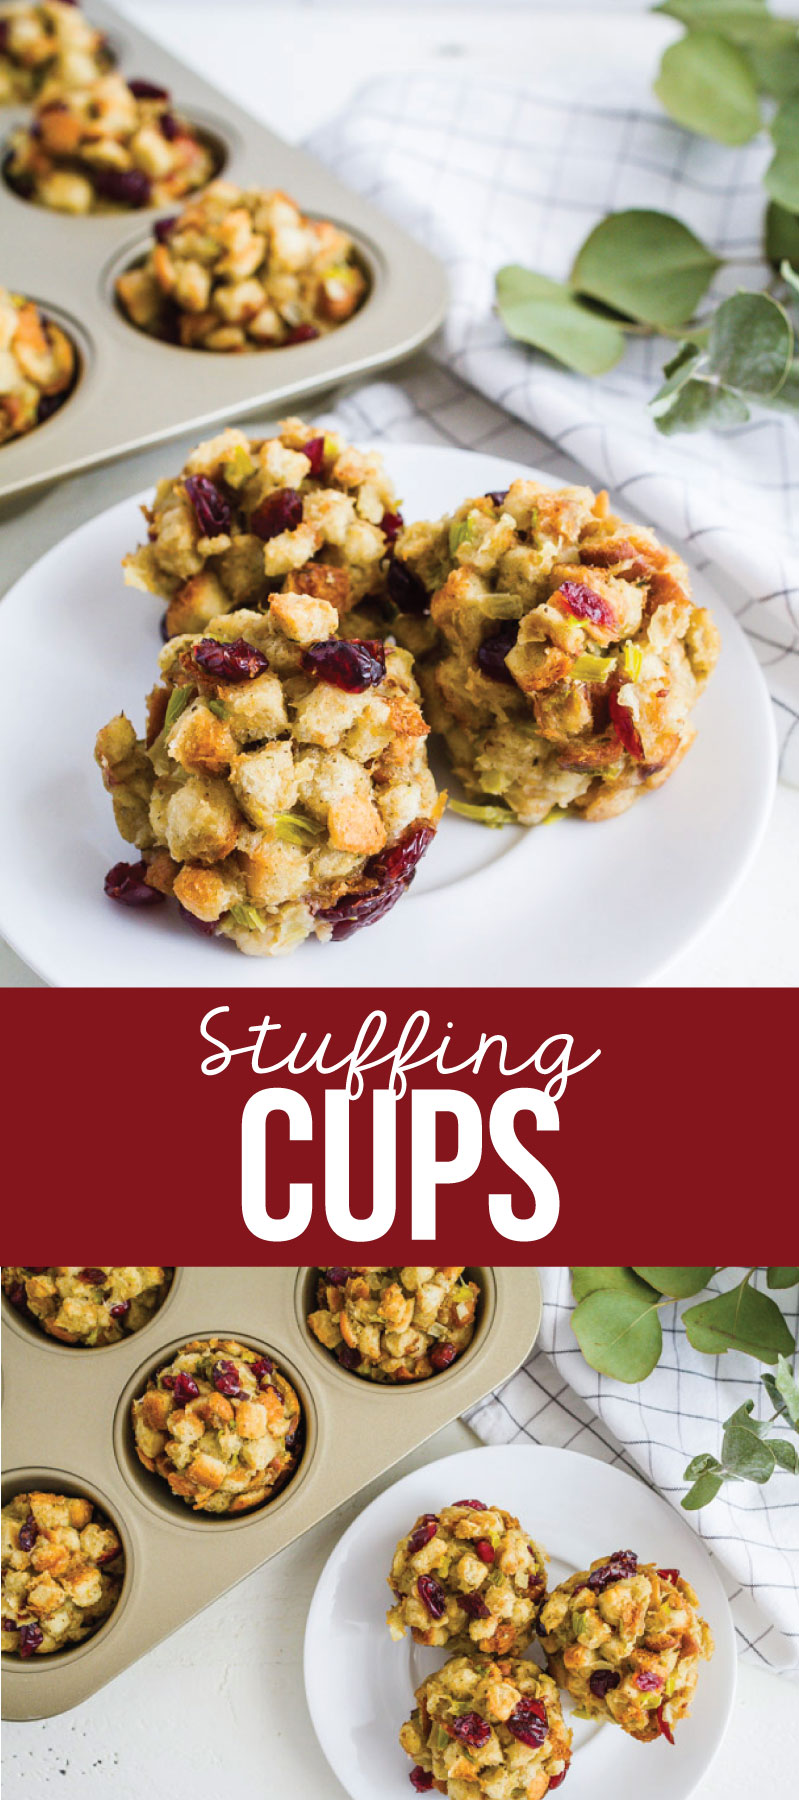 Cranberry Stuffing Cups - make this stuffing recipe ahead to be ready for Thanksgiving (or anytime!).  via www.thirtyhandmadedays.com